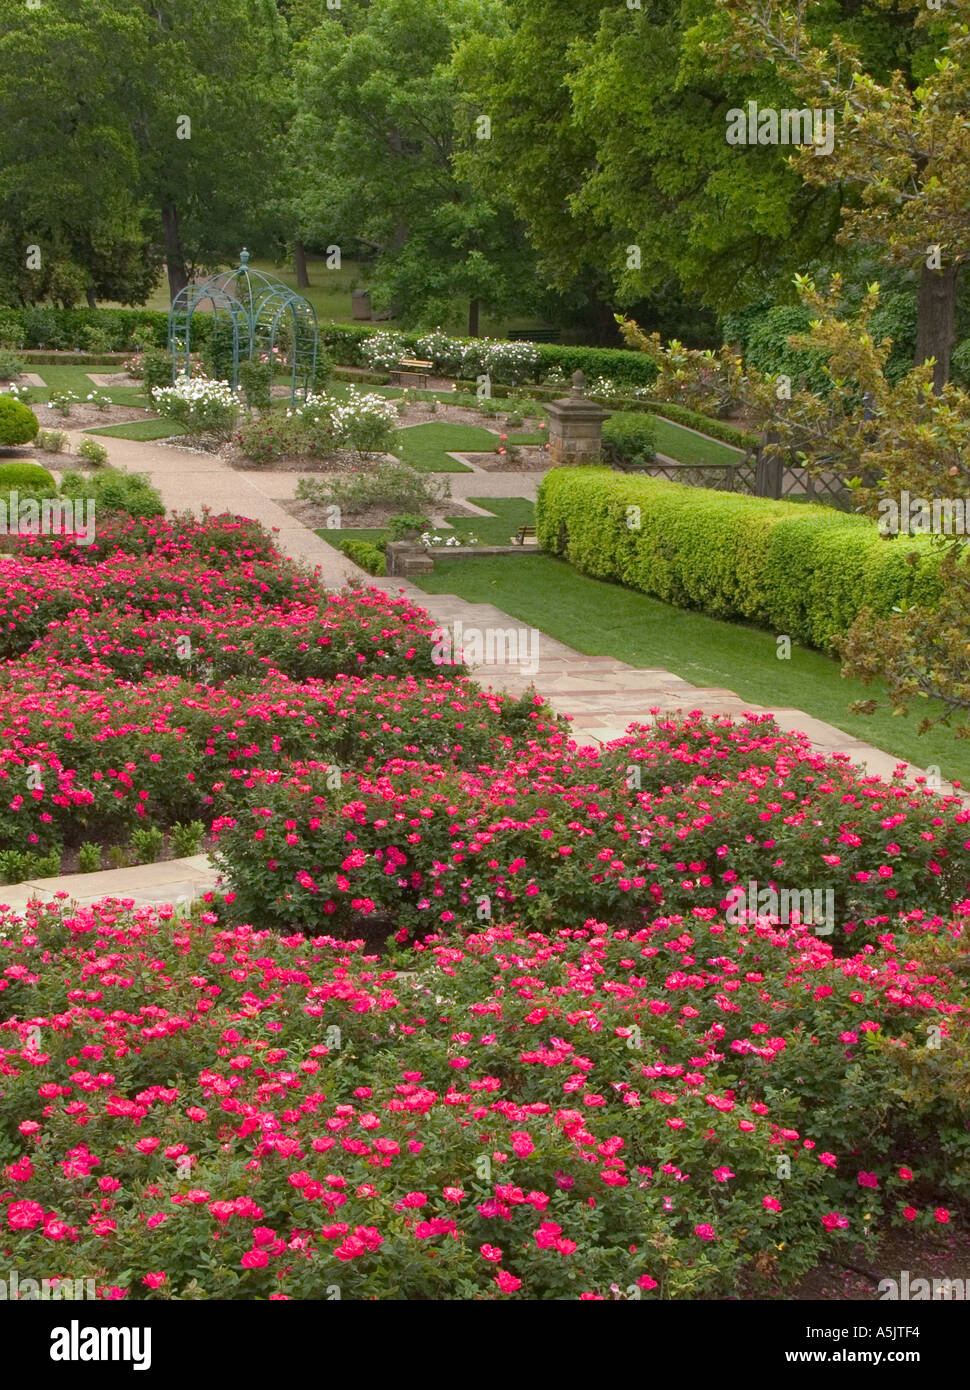 Fort Worth Botanical Garden Stock Photos & Fort Worth Botanical ...